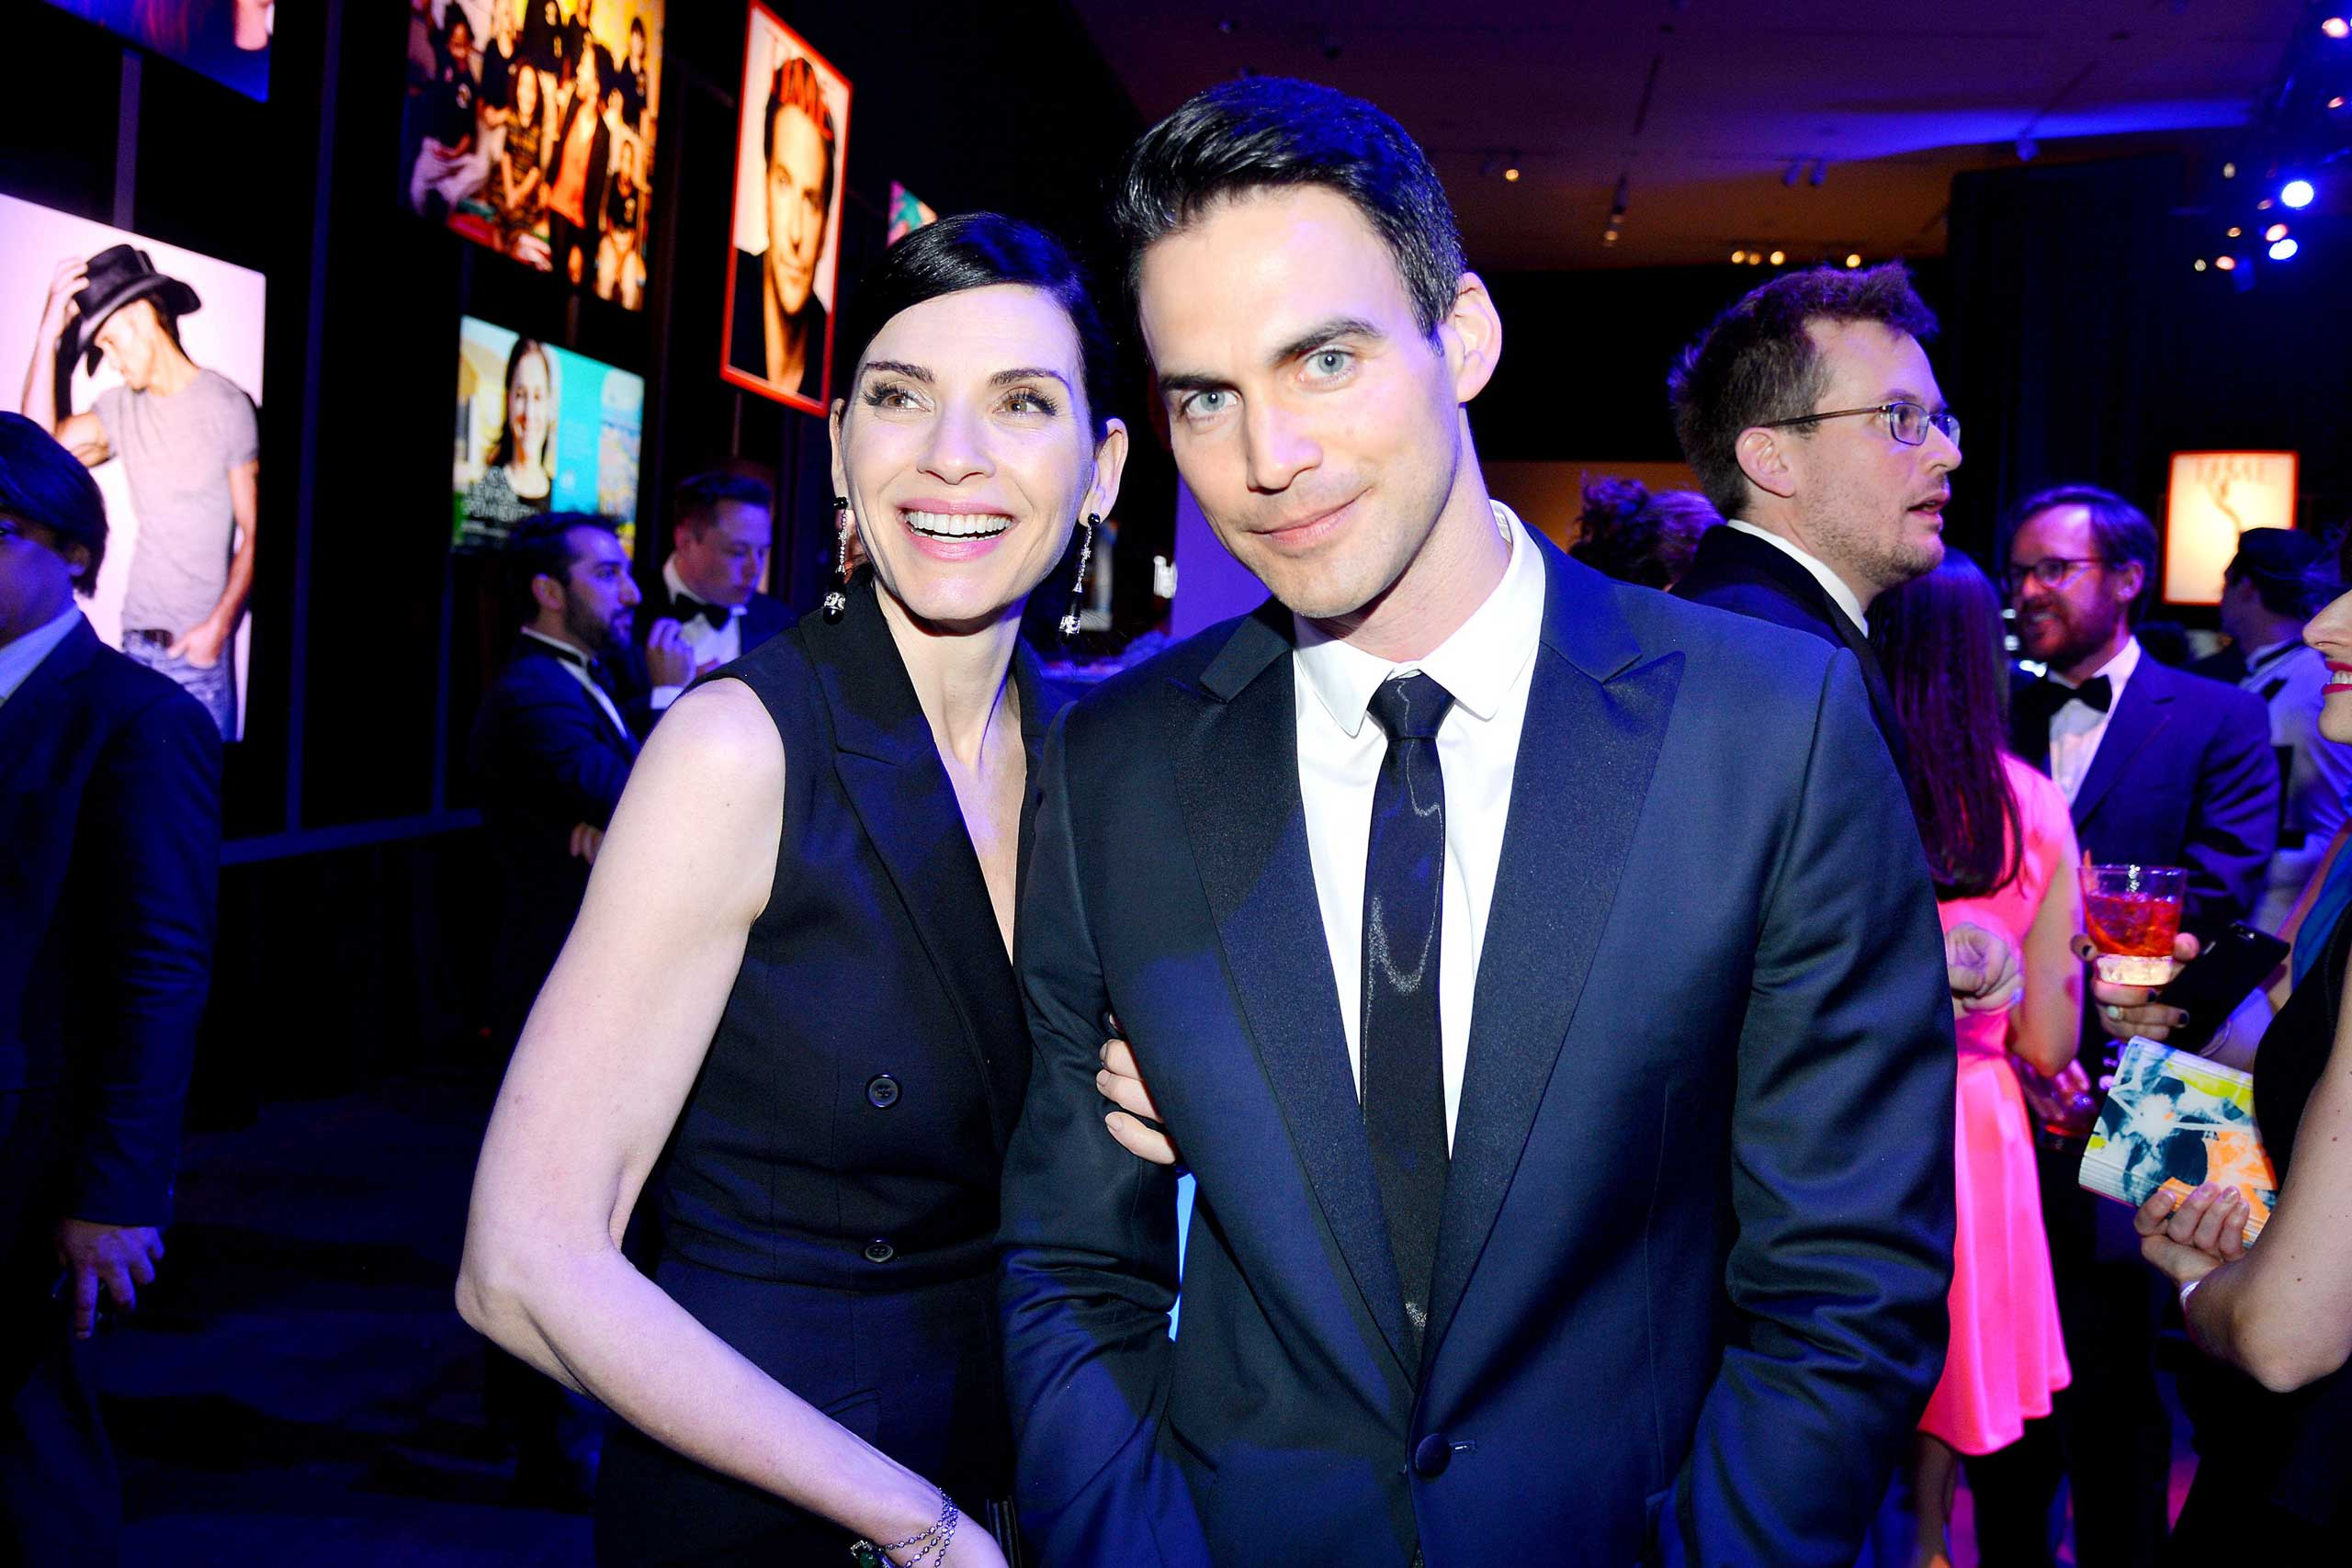 Julianna Margulies and Keith Lieberthal attend the TIME 100 Gala at Jazz at Lincoln Center in New York City on April 21, 2015.